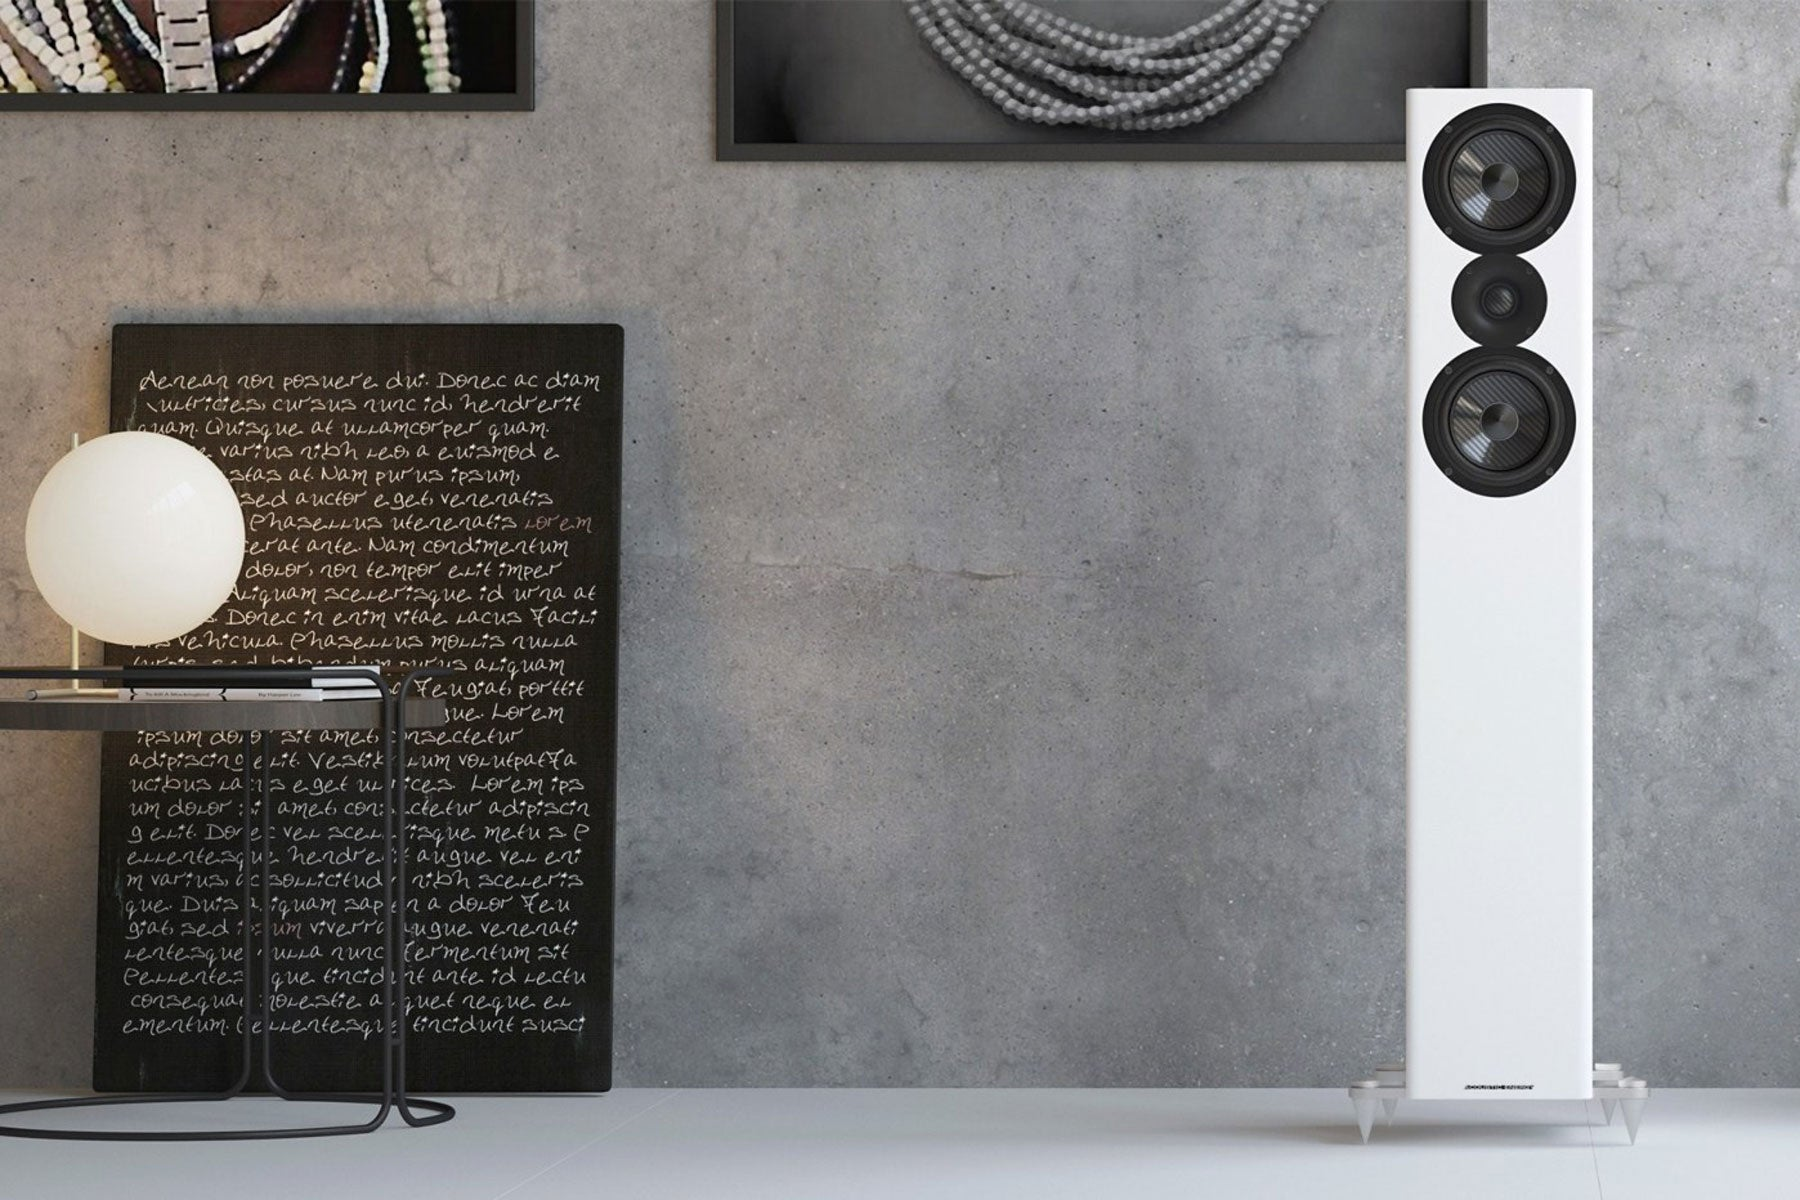 Acoustic Energy speakers return to Canada